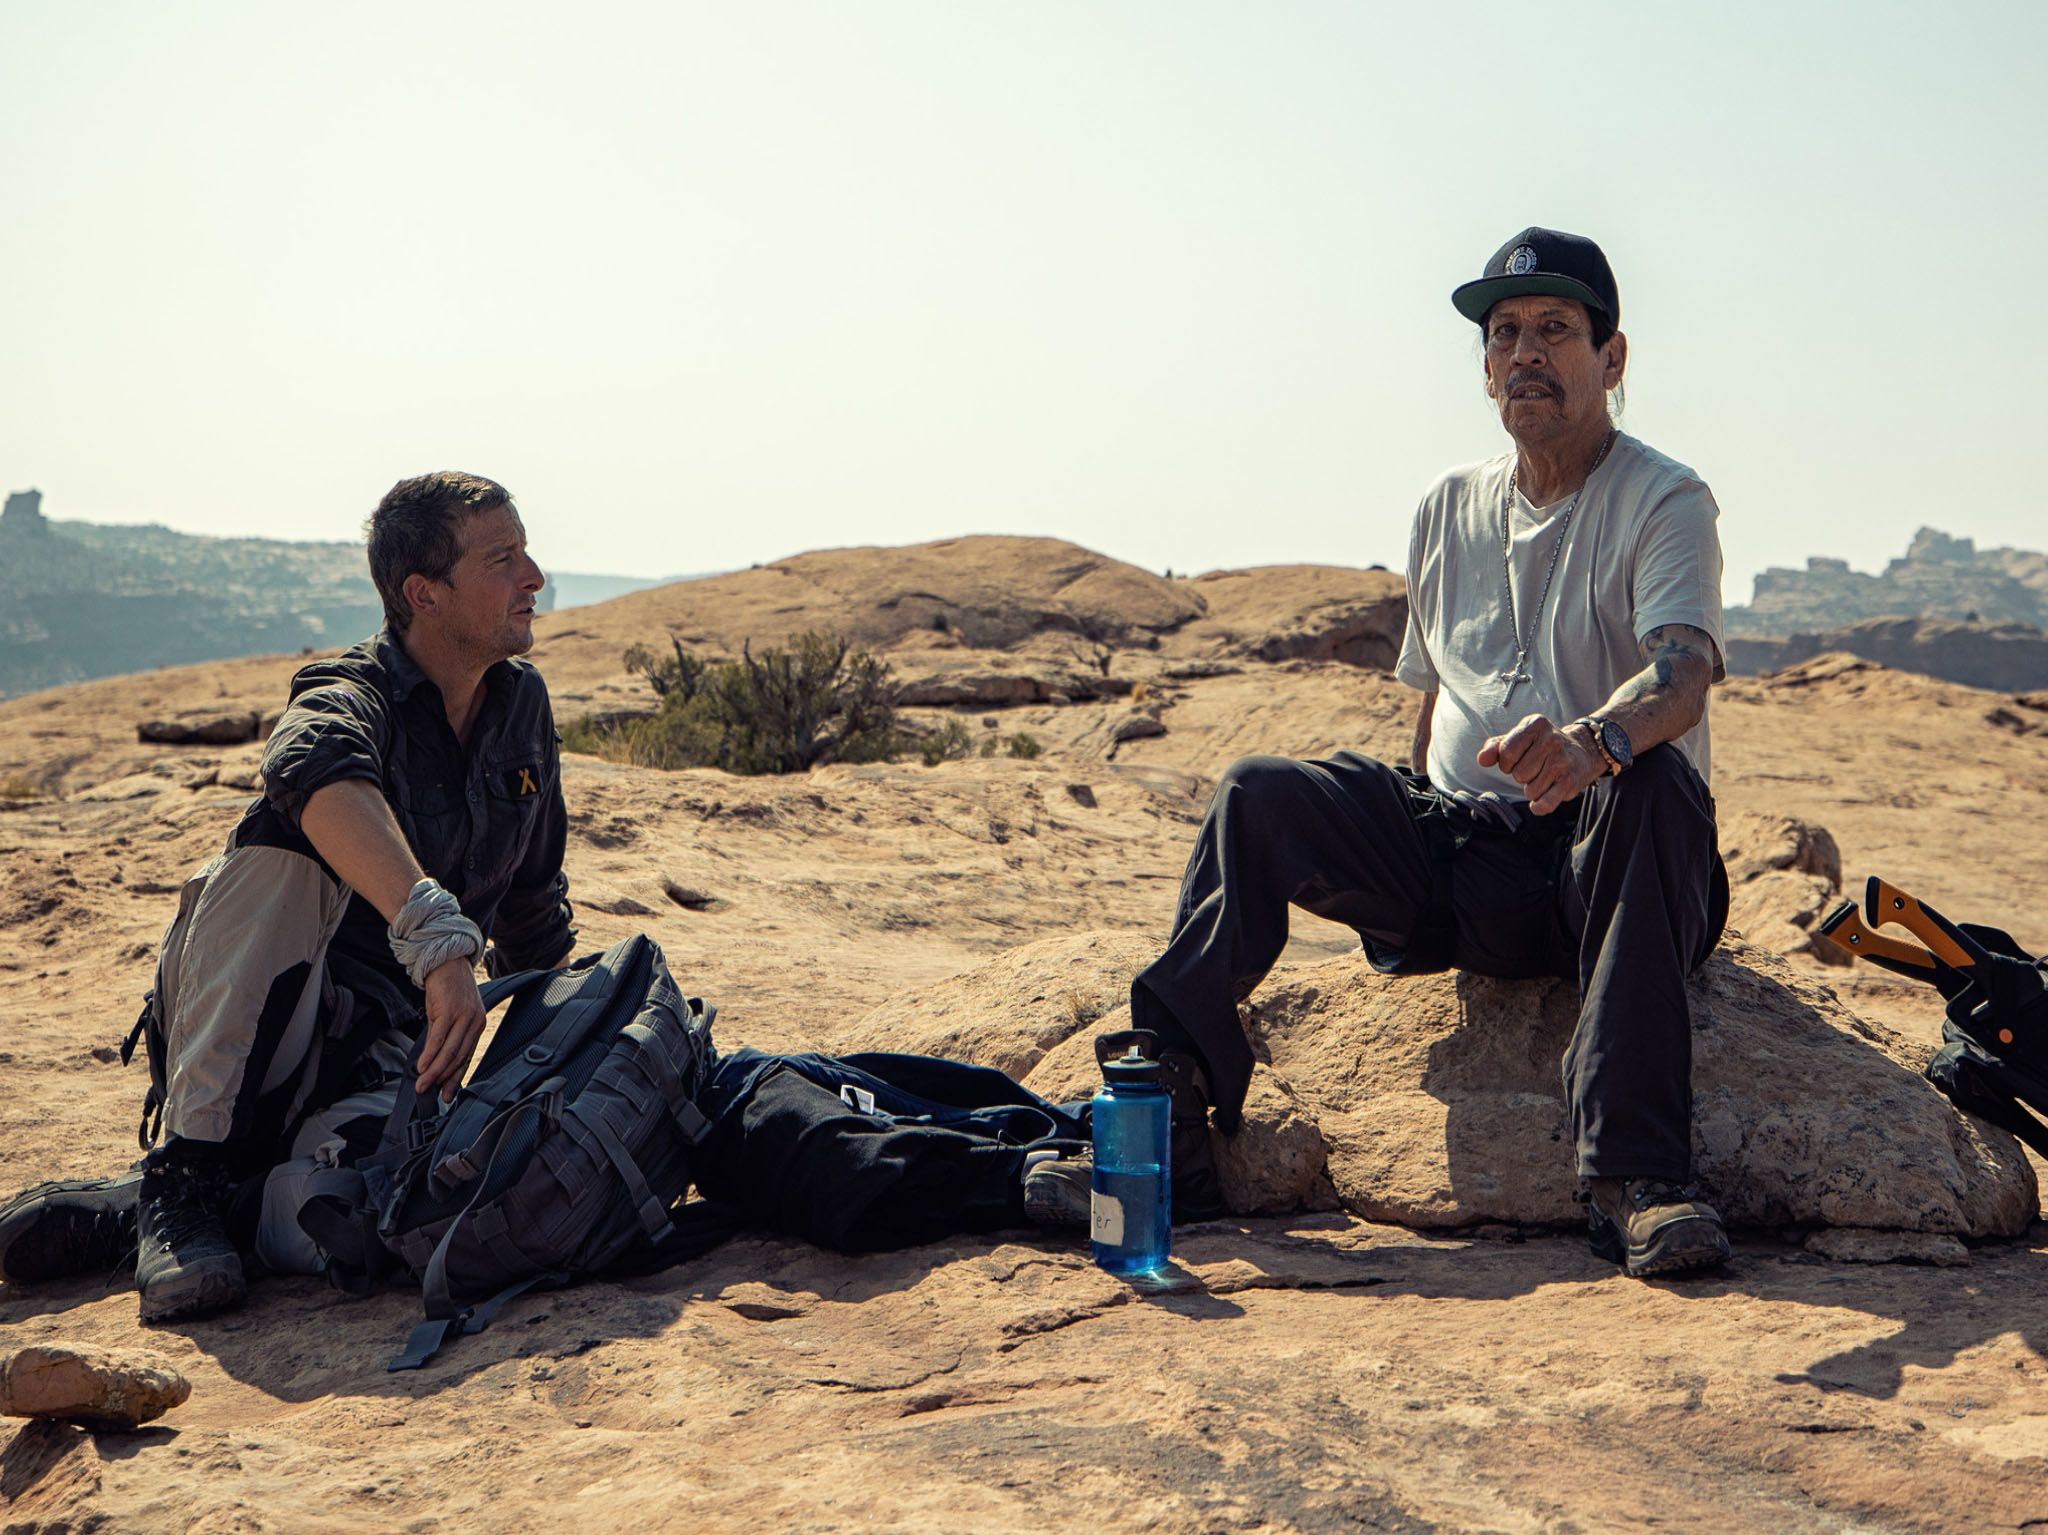 Bear Grylls and Danny Trejo stop to chat. This image is from Running Wild with Bear Grylls. [Photo of the day - April 2021]